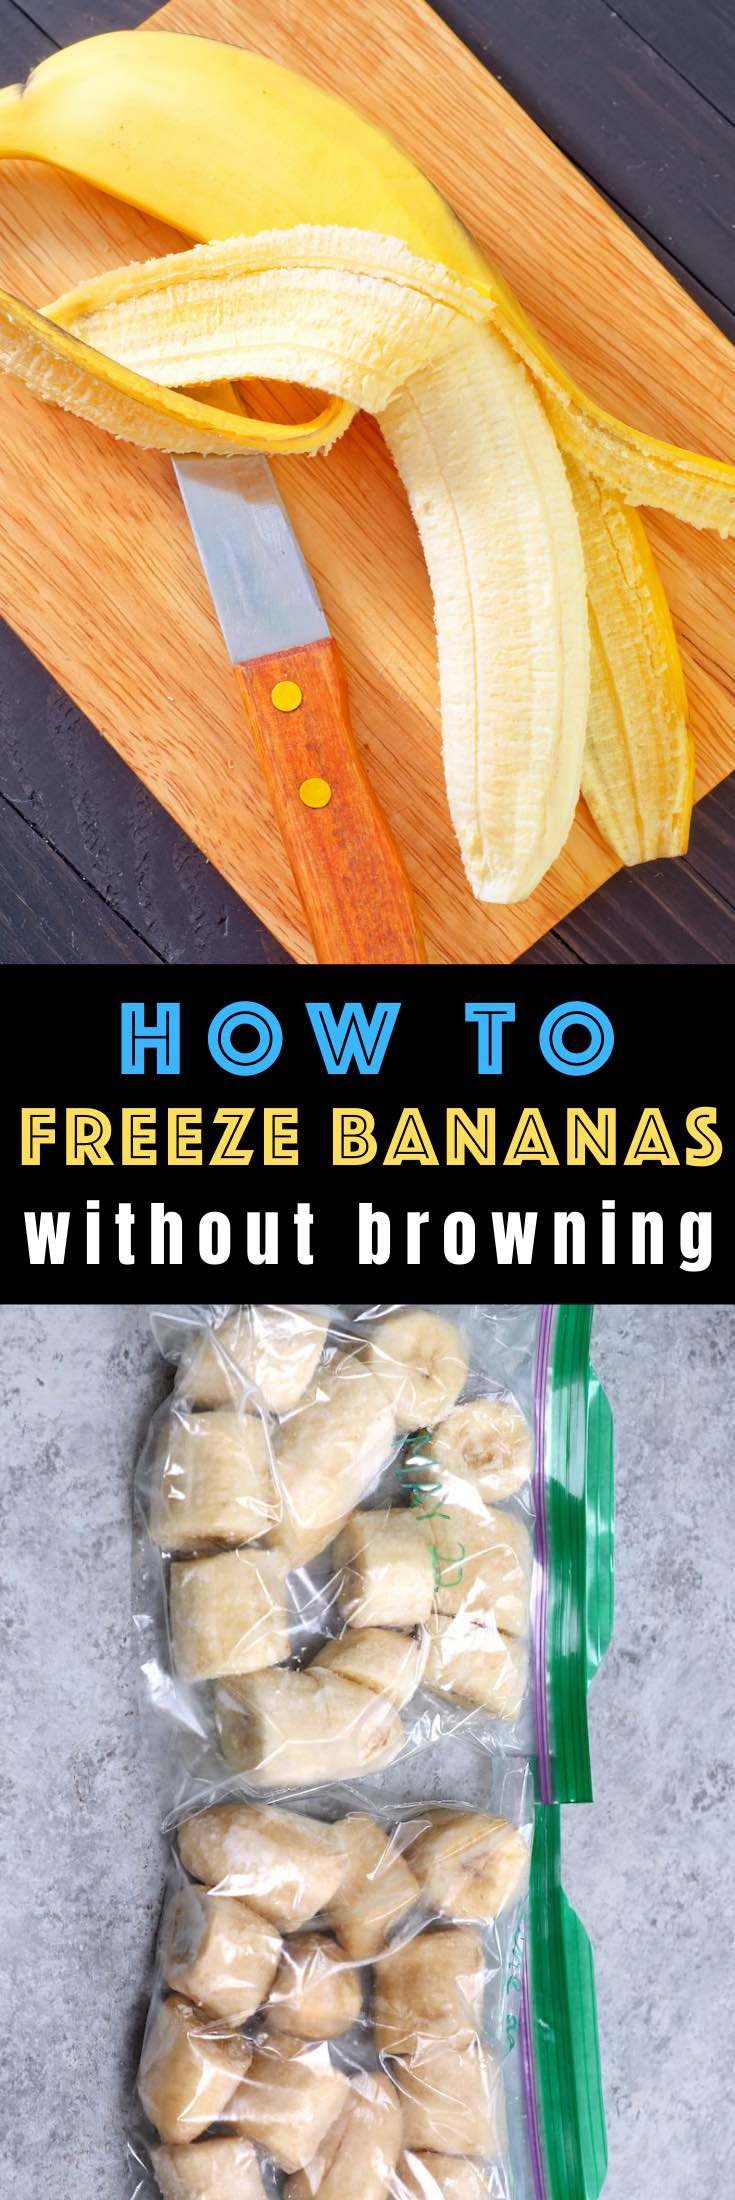 How to Freeze Bananas without discoloring - learn all the tips for freezing bananas quickly and easily